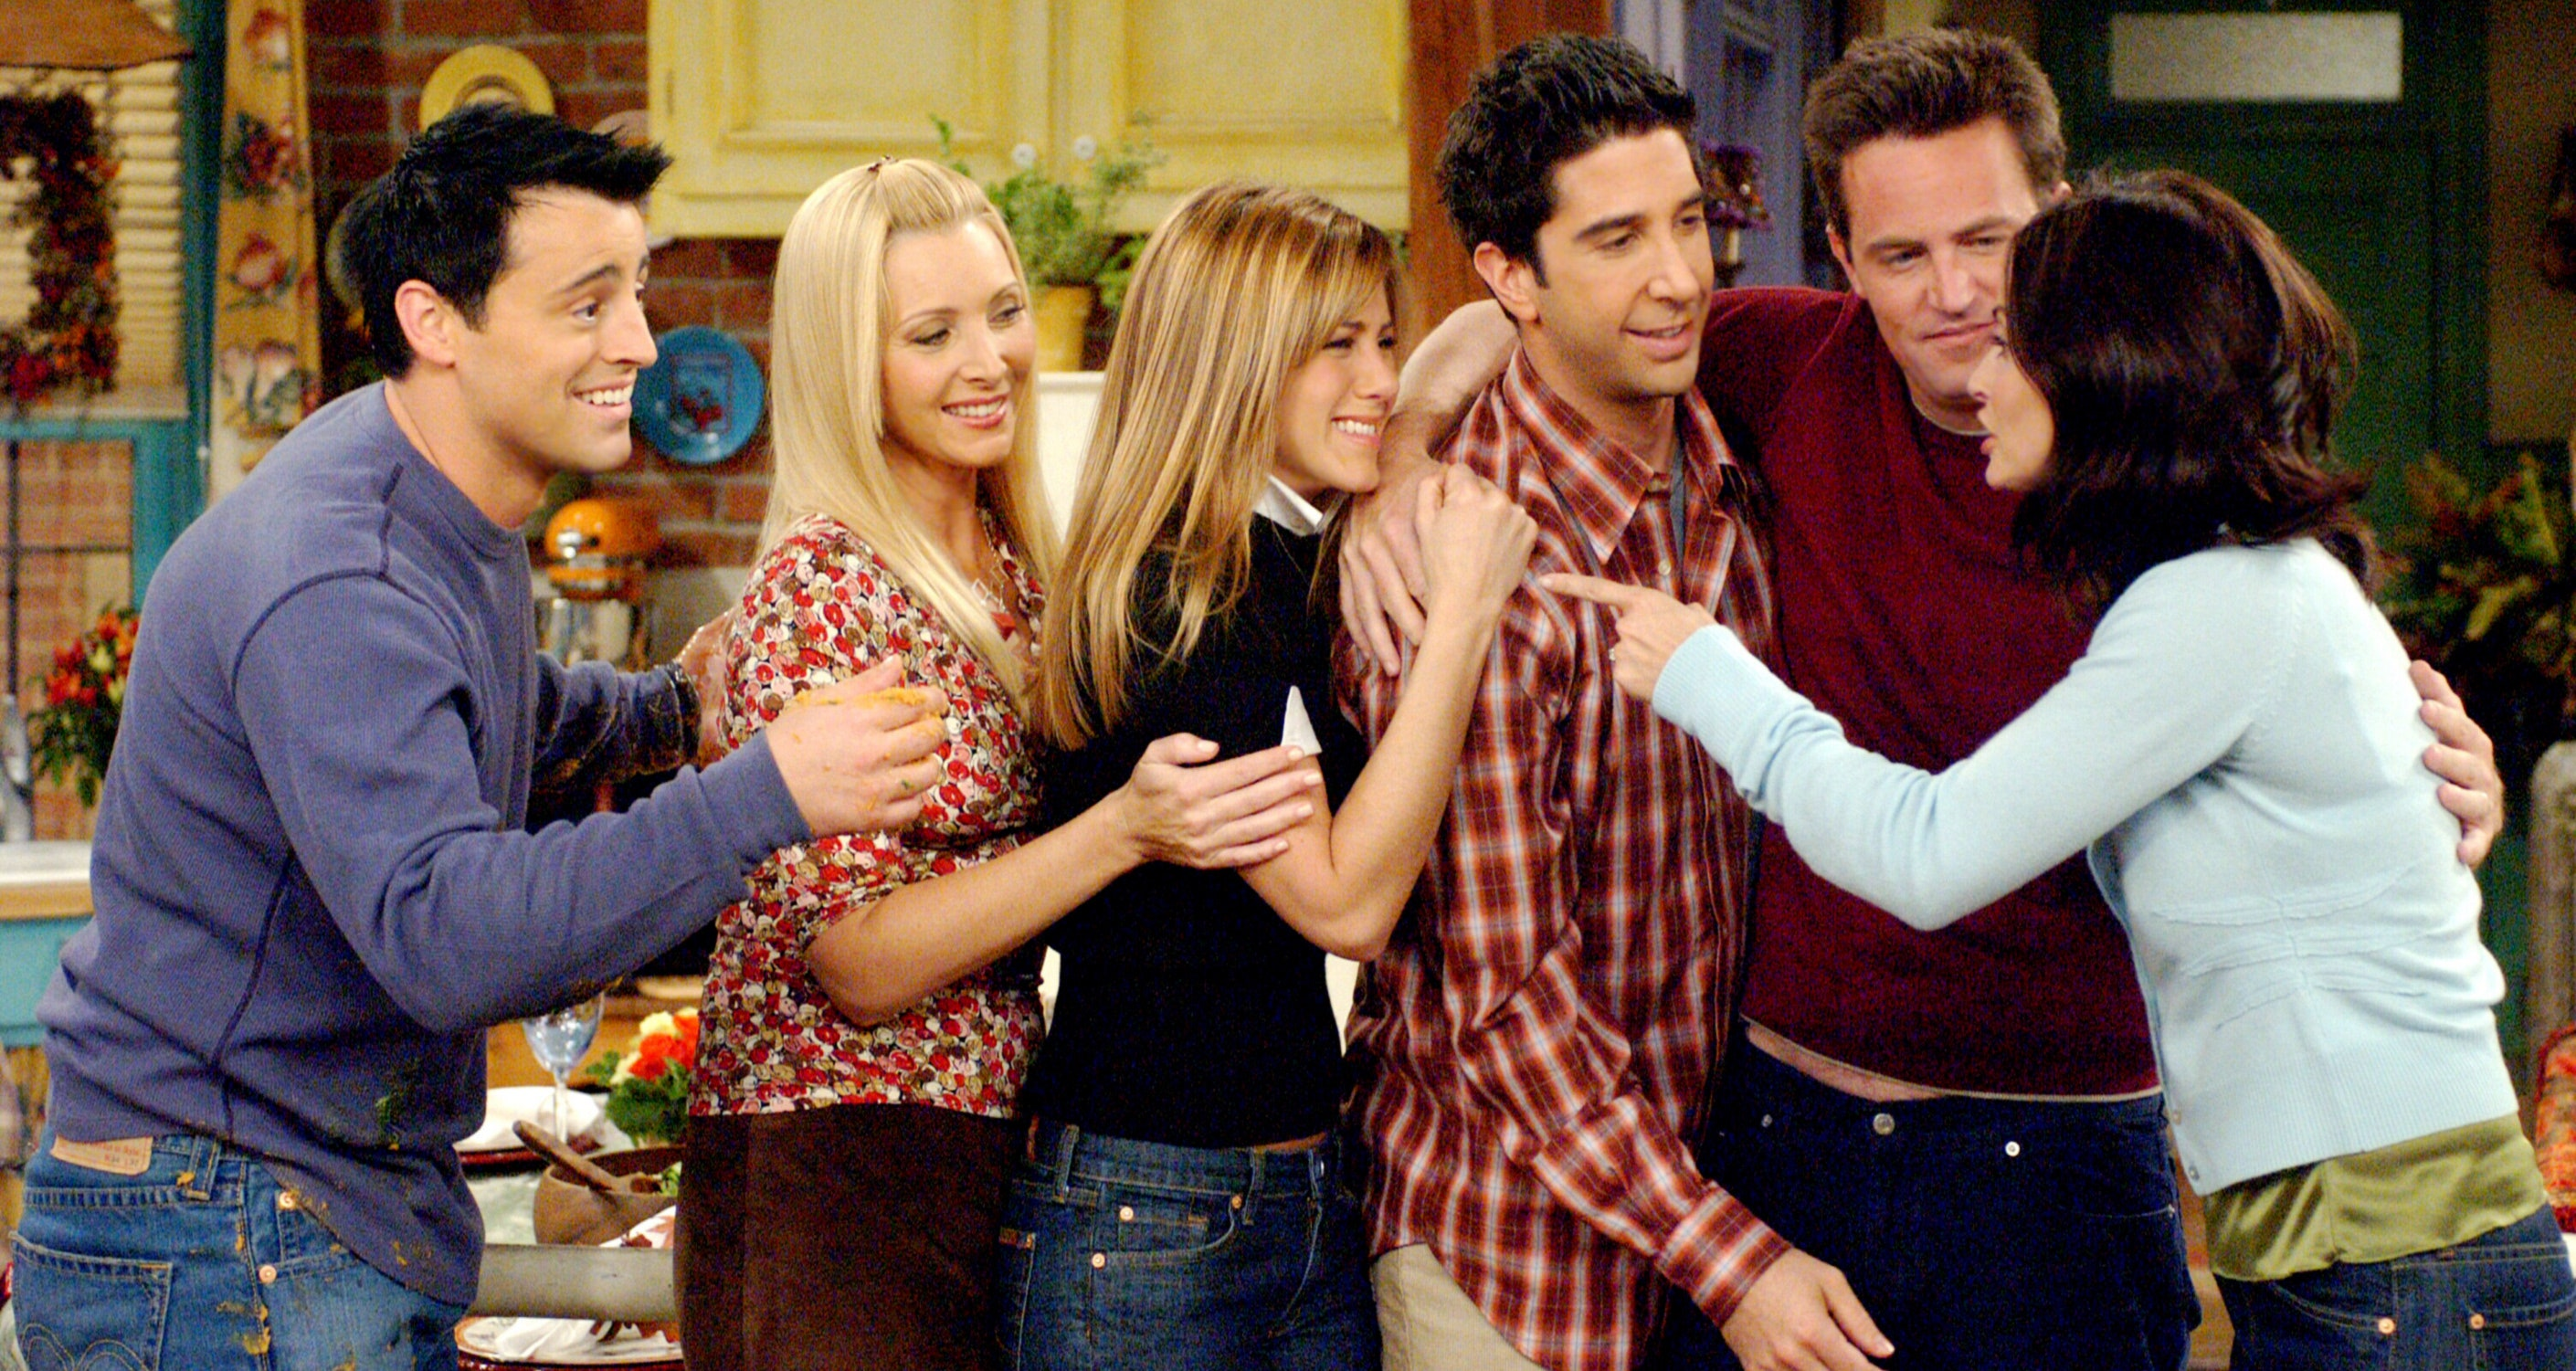 7 Things You Didn't Know About Popular TV Series 'Friends'